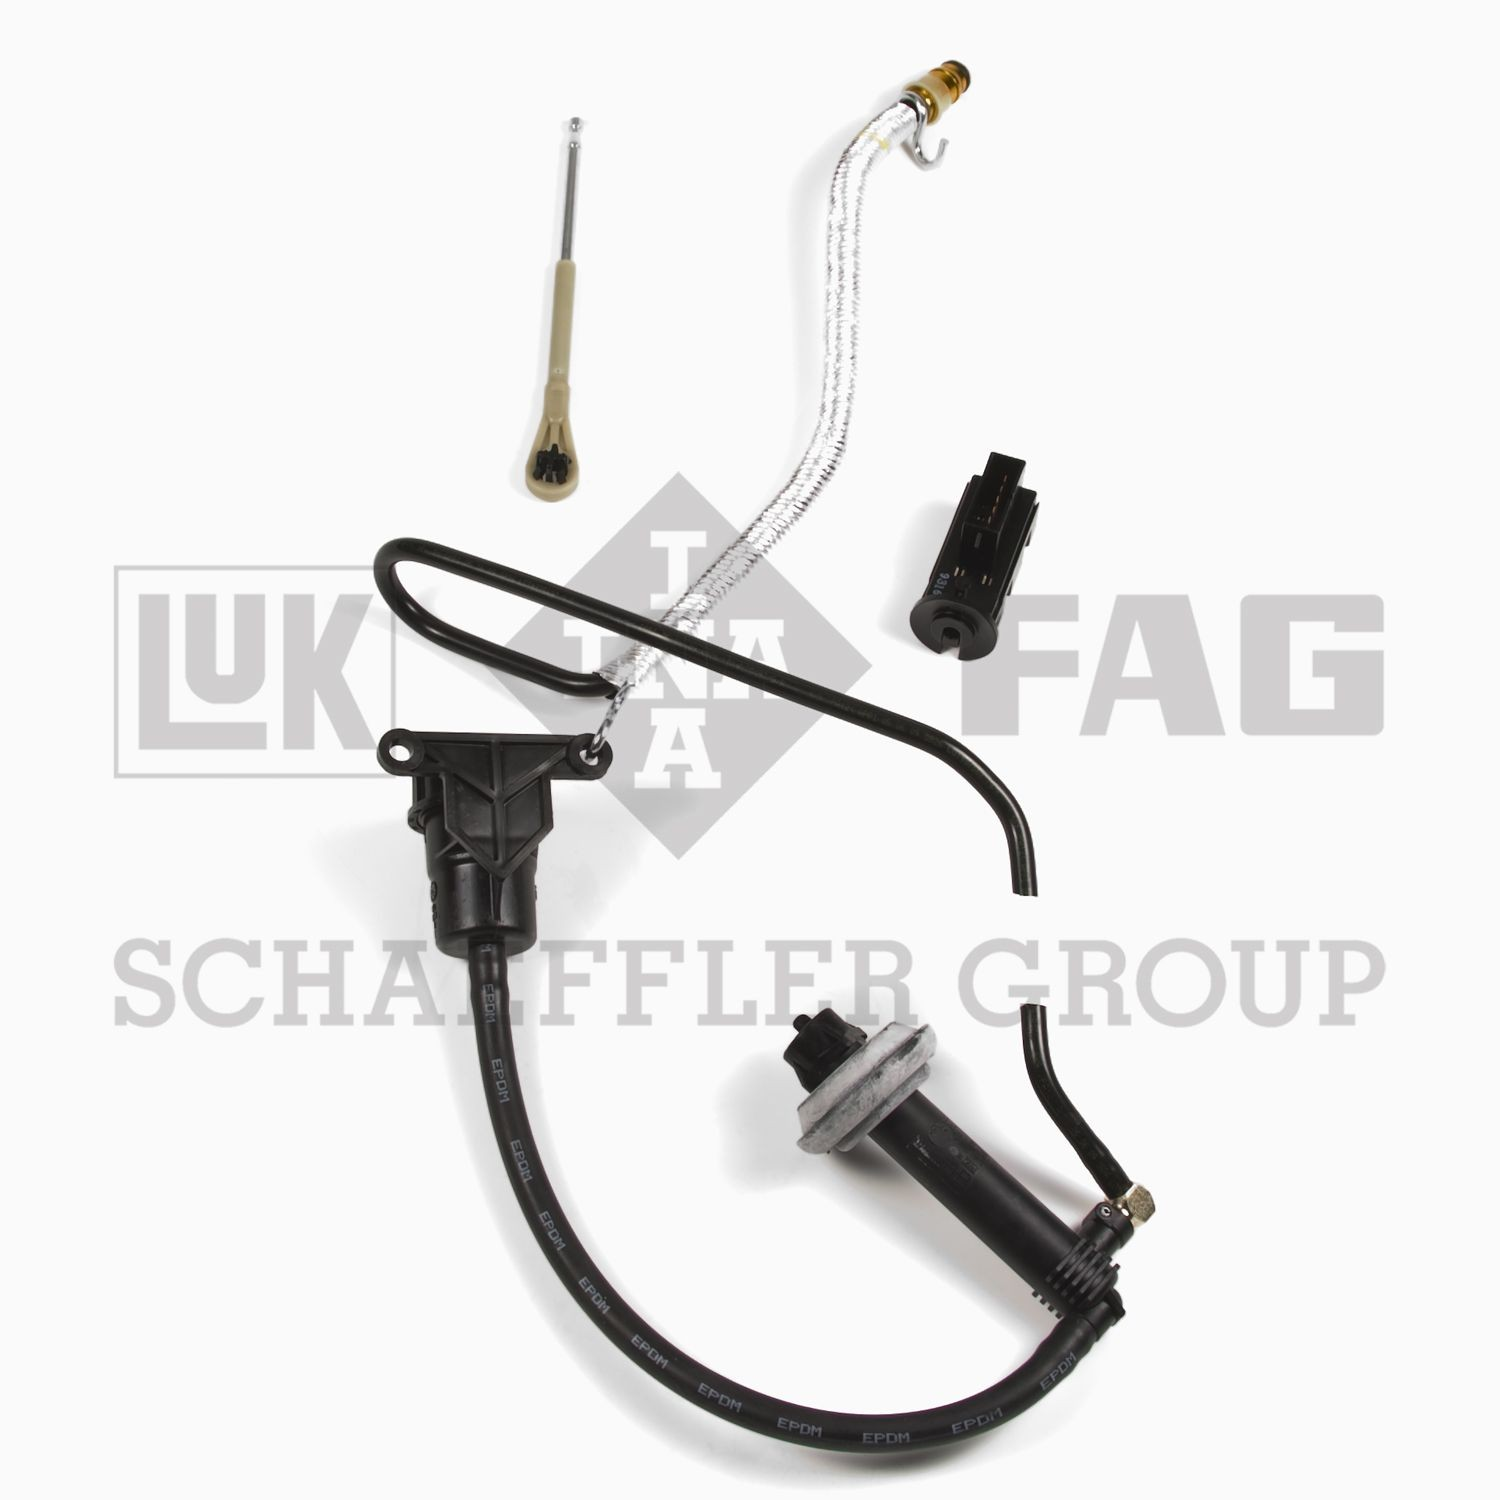 2000 Ford Ranger Clutch Master And Slave Cylinder Assembly Lk Crs025: Ford Ranger Clutch Slave Cylinder Diagram At Chusao.net